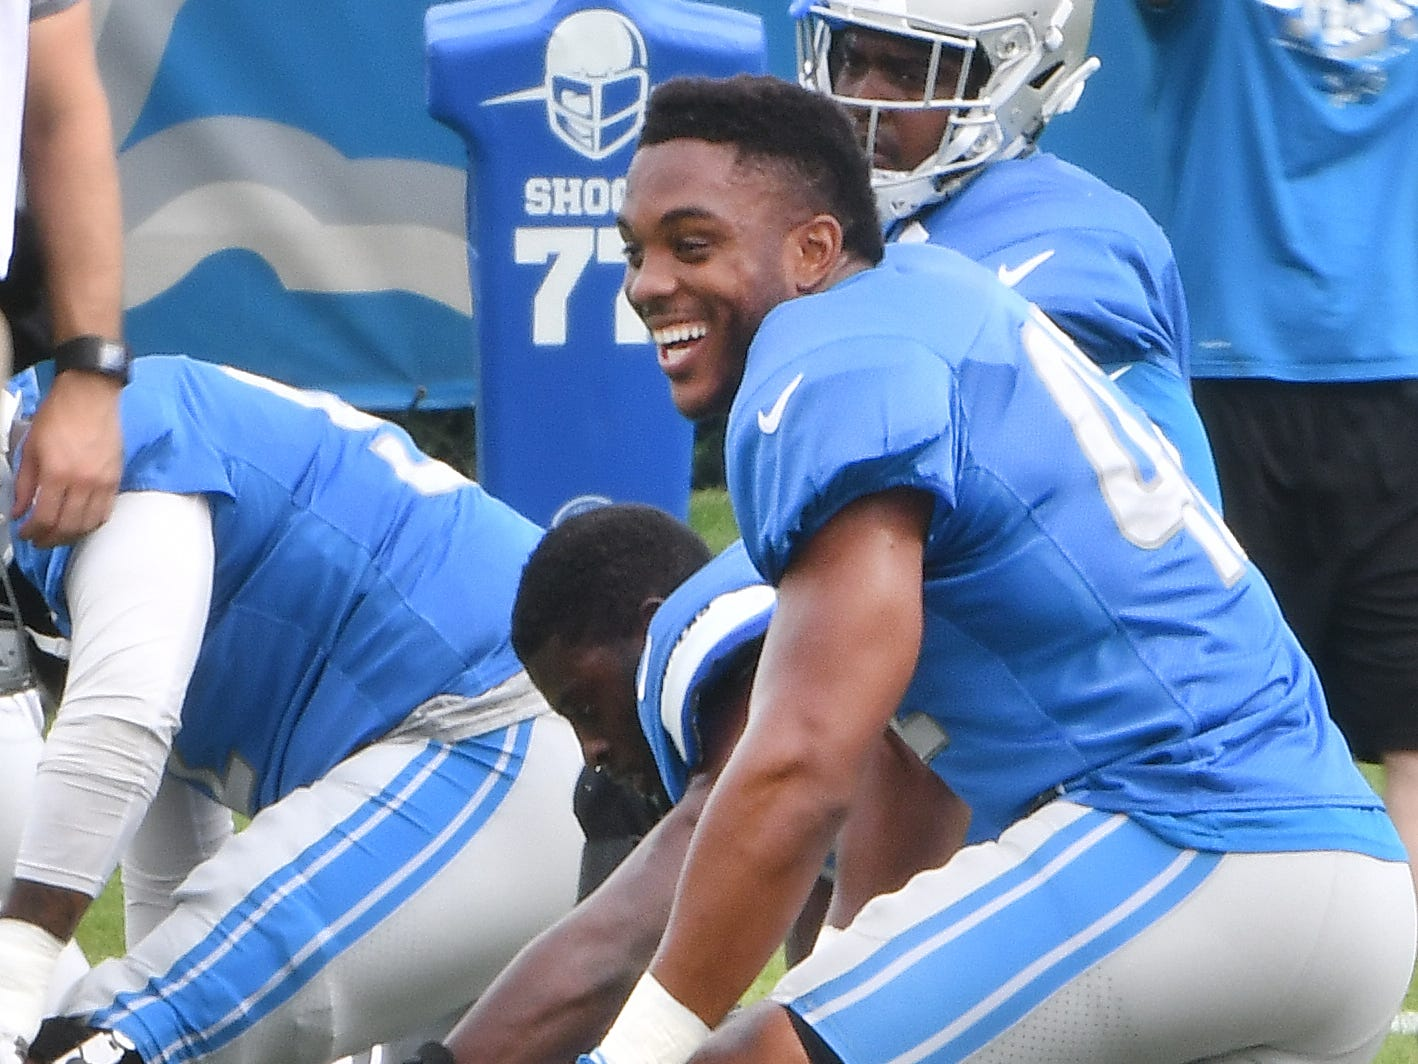 Lions linebacker Devon Kennard goes though stretching with the team.